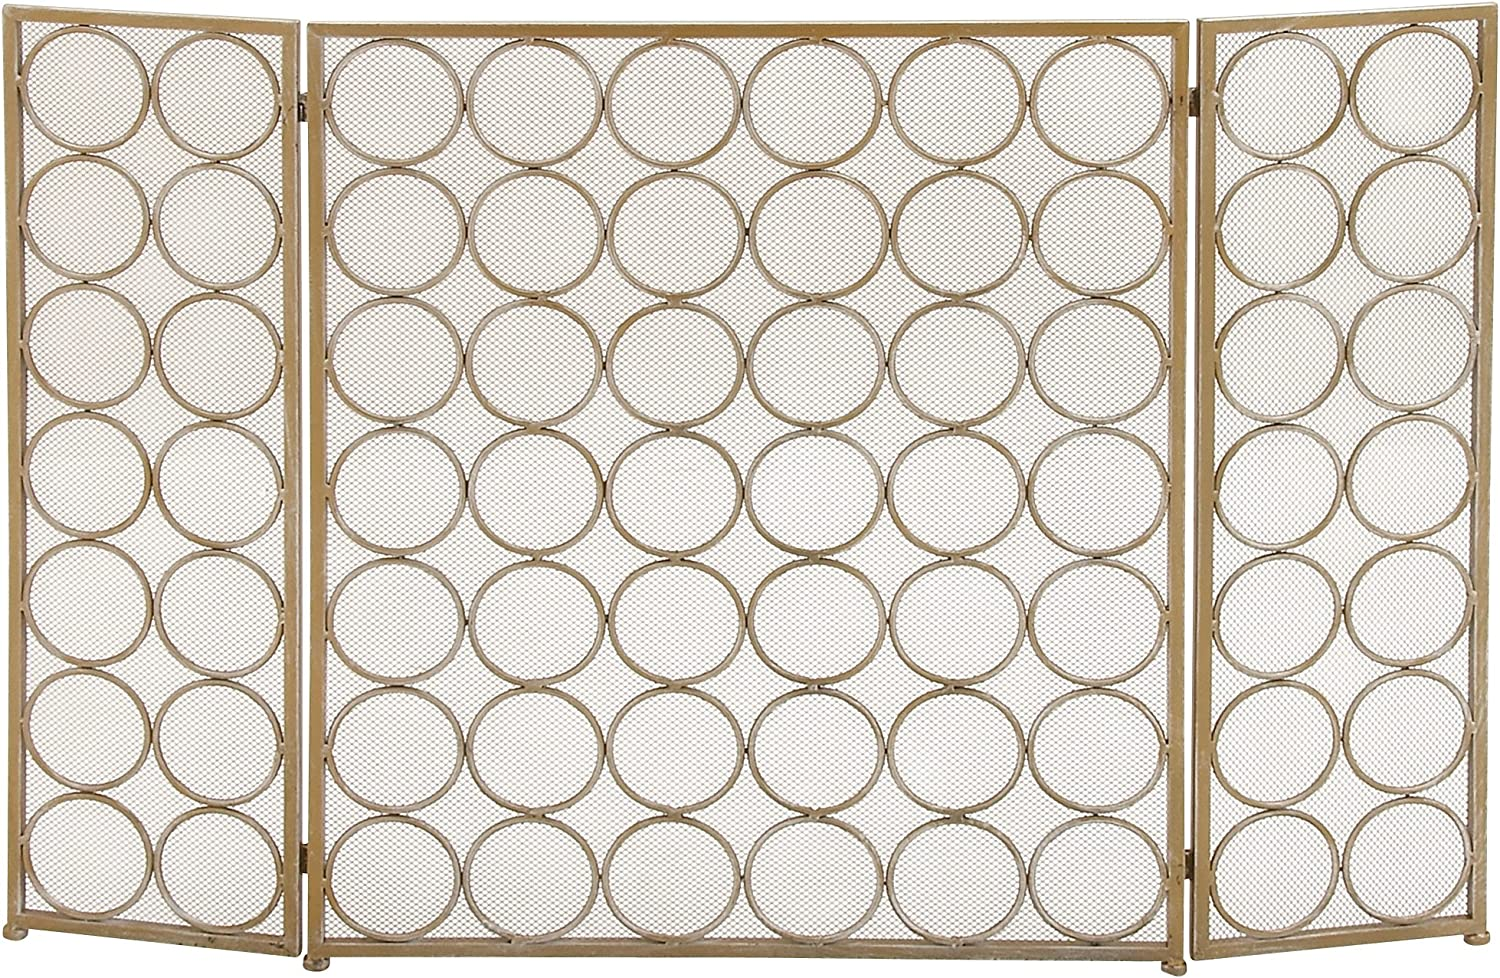 "Large 3-Panel Silver Metal Fireplace Screen, Decorative Fire Screen, Fireplace Screen with Metal Circle Pattern, Modern Accent Furniture, 47"" x 32"""